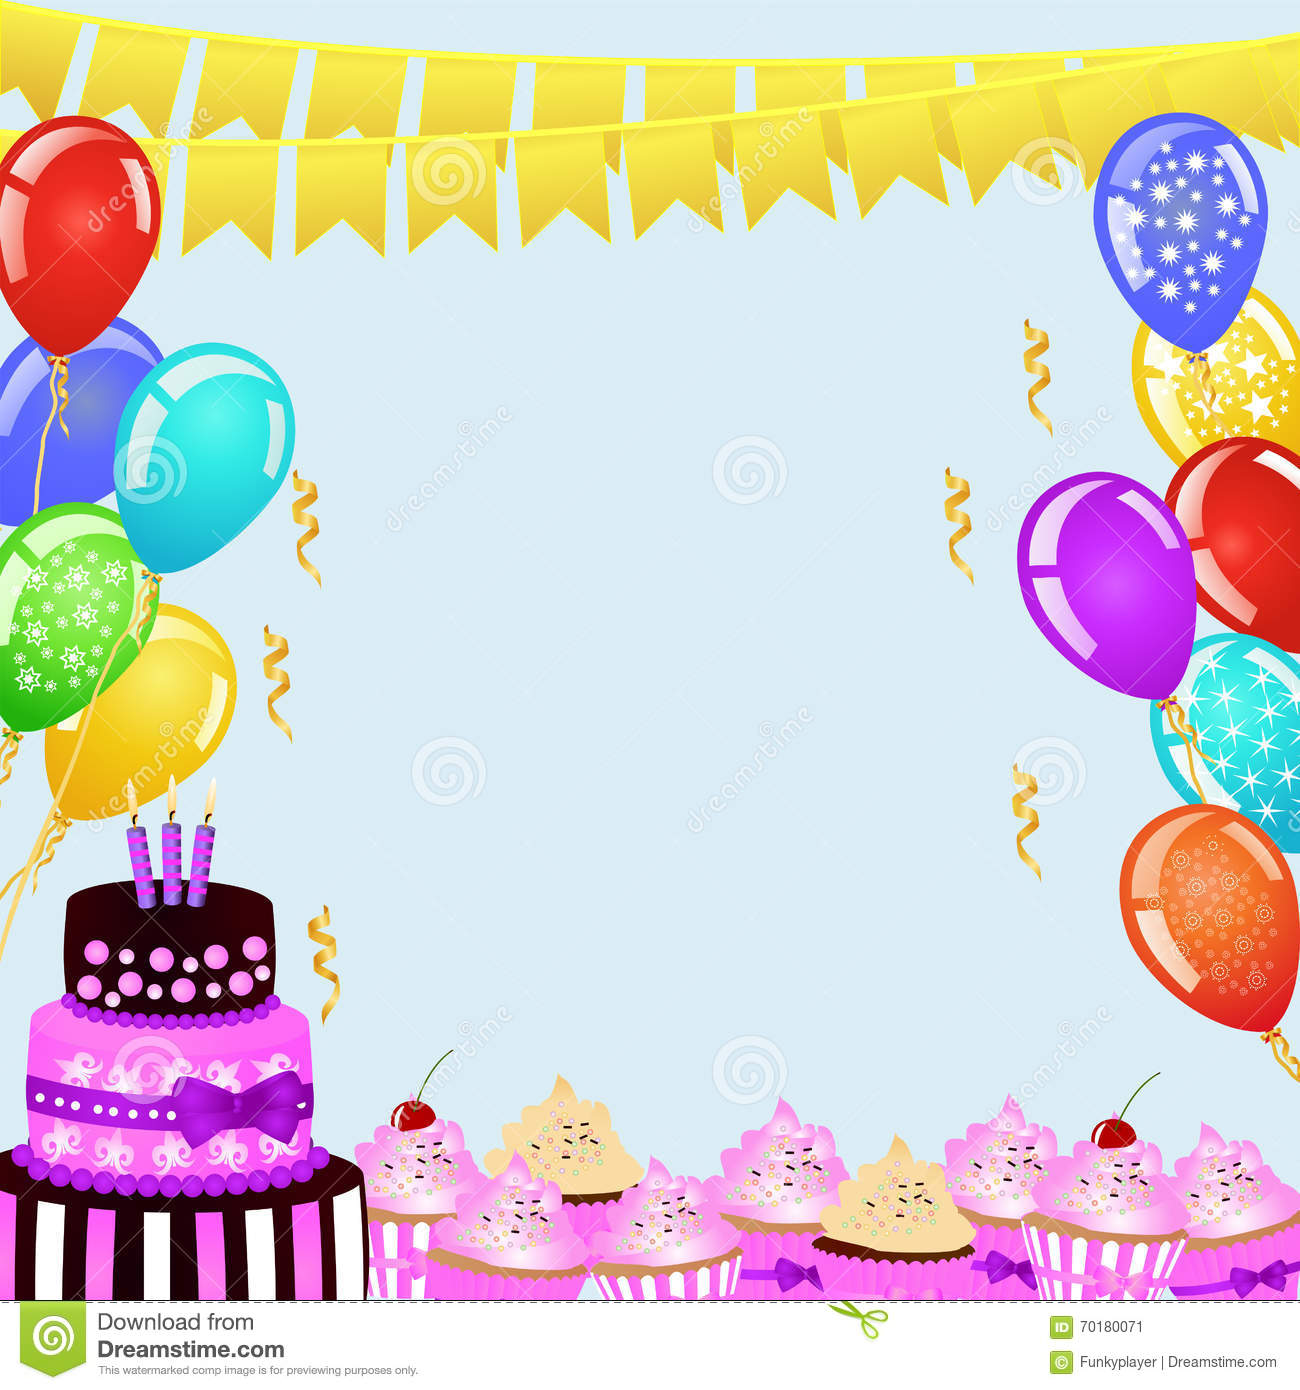 birthday borders and backgrounds ; birthday-party-background-bunting-flags-balloons-birthday-cake-cupcakes-border-your-design-festive-frame-70180071